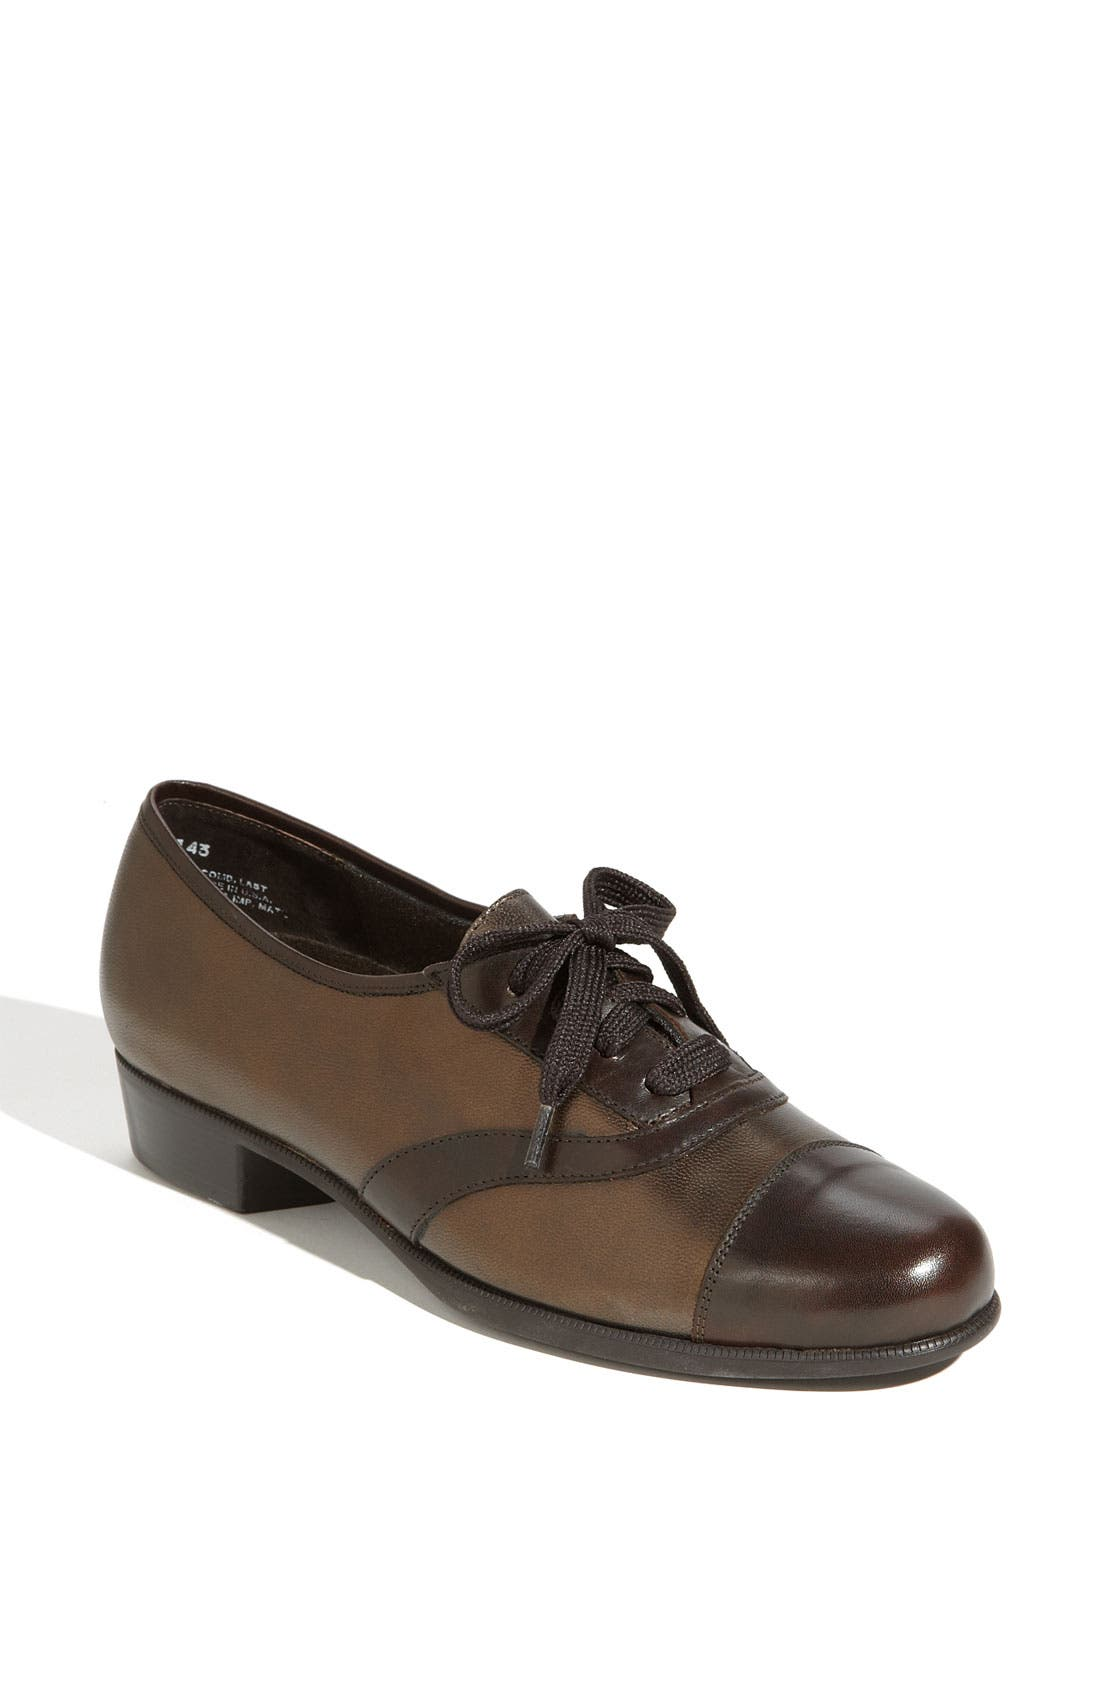 Alternate Image 1 Selected - Munro 'Ascot' Lace-Up